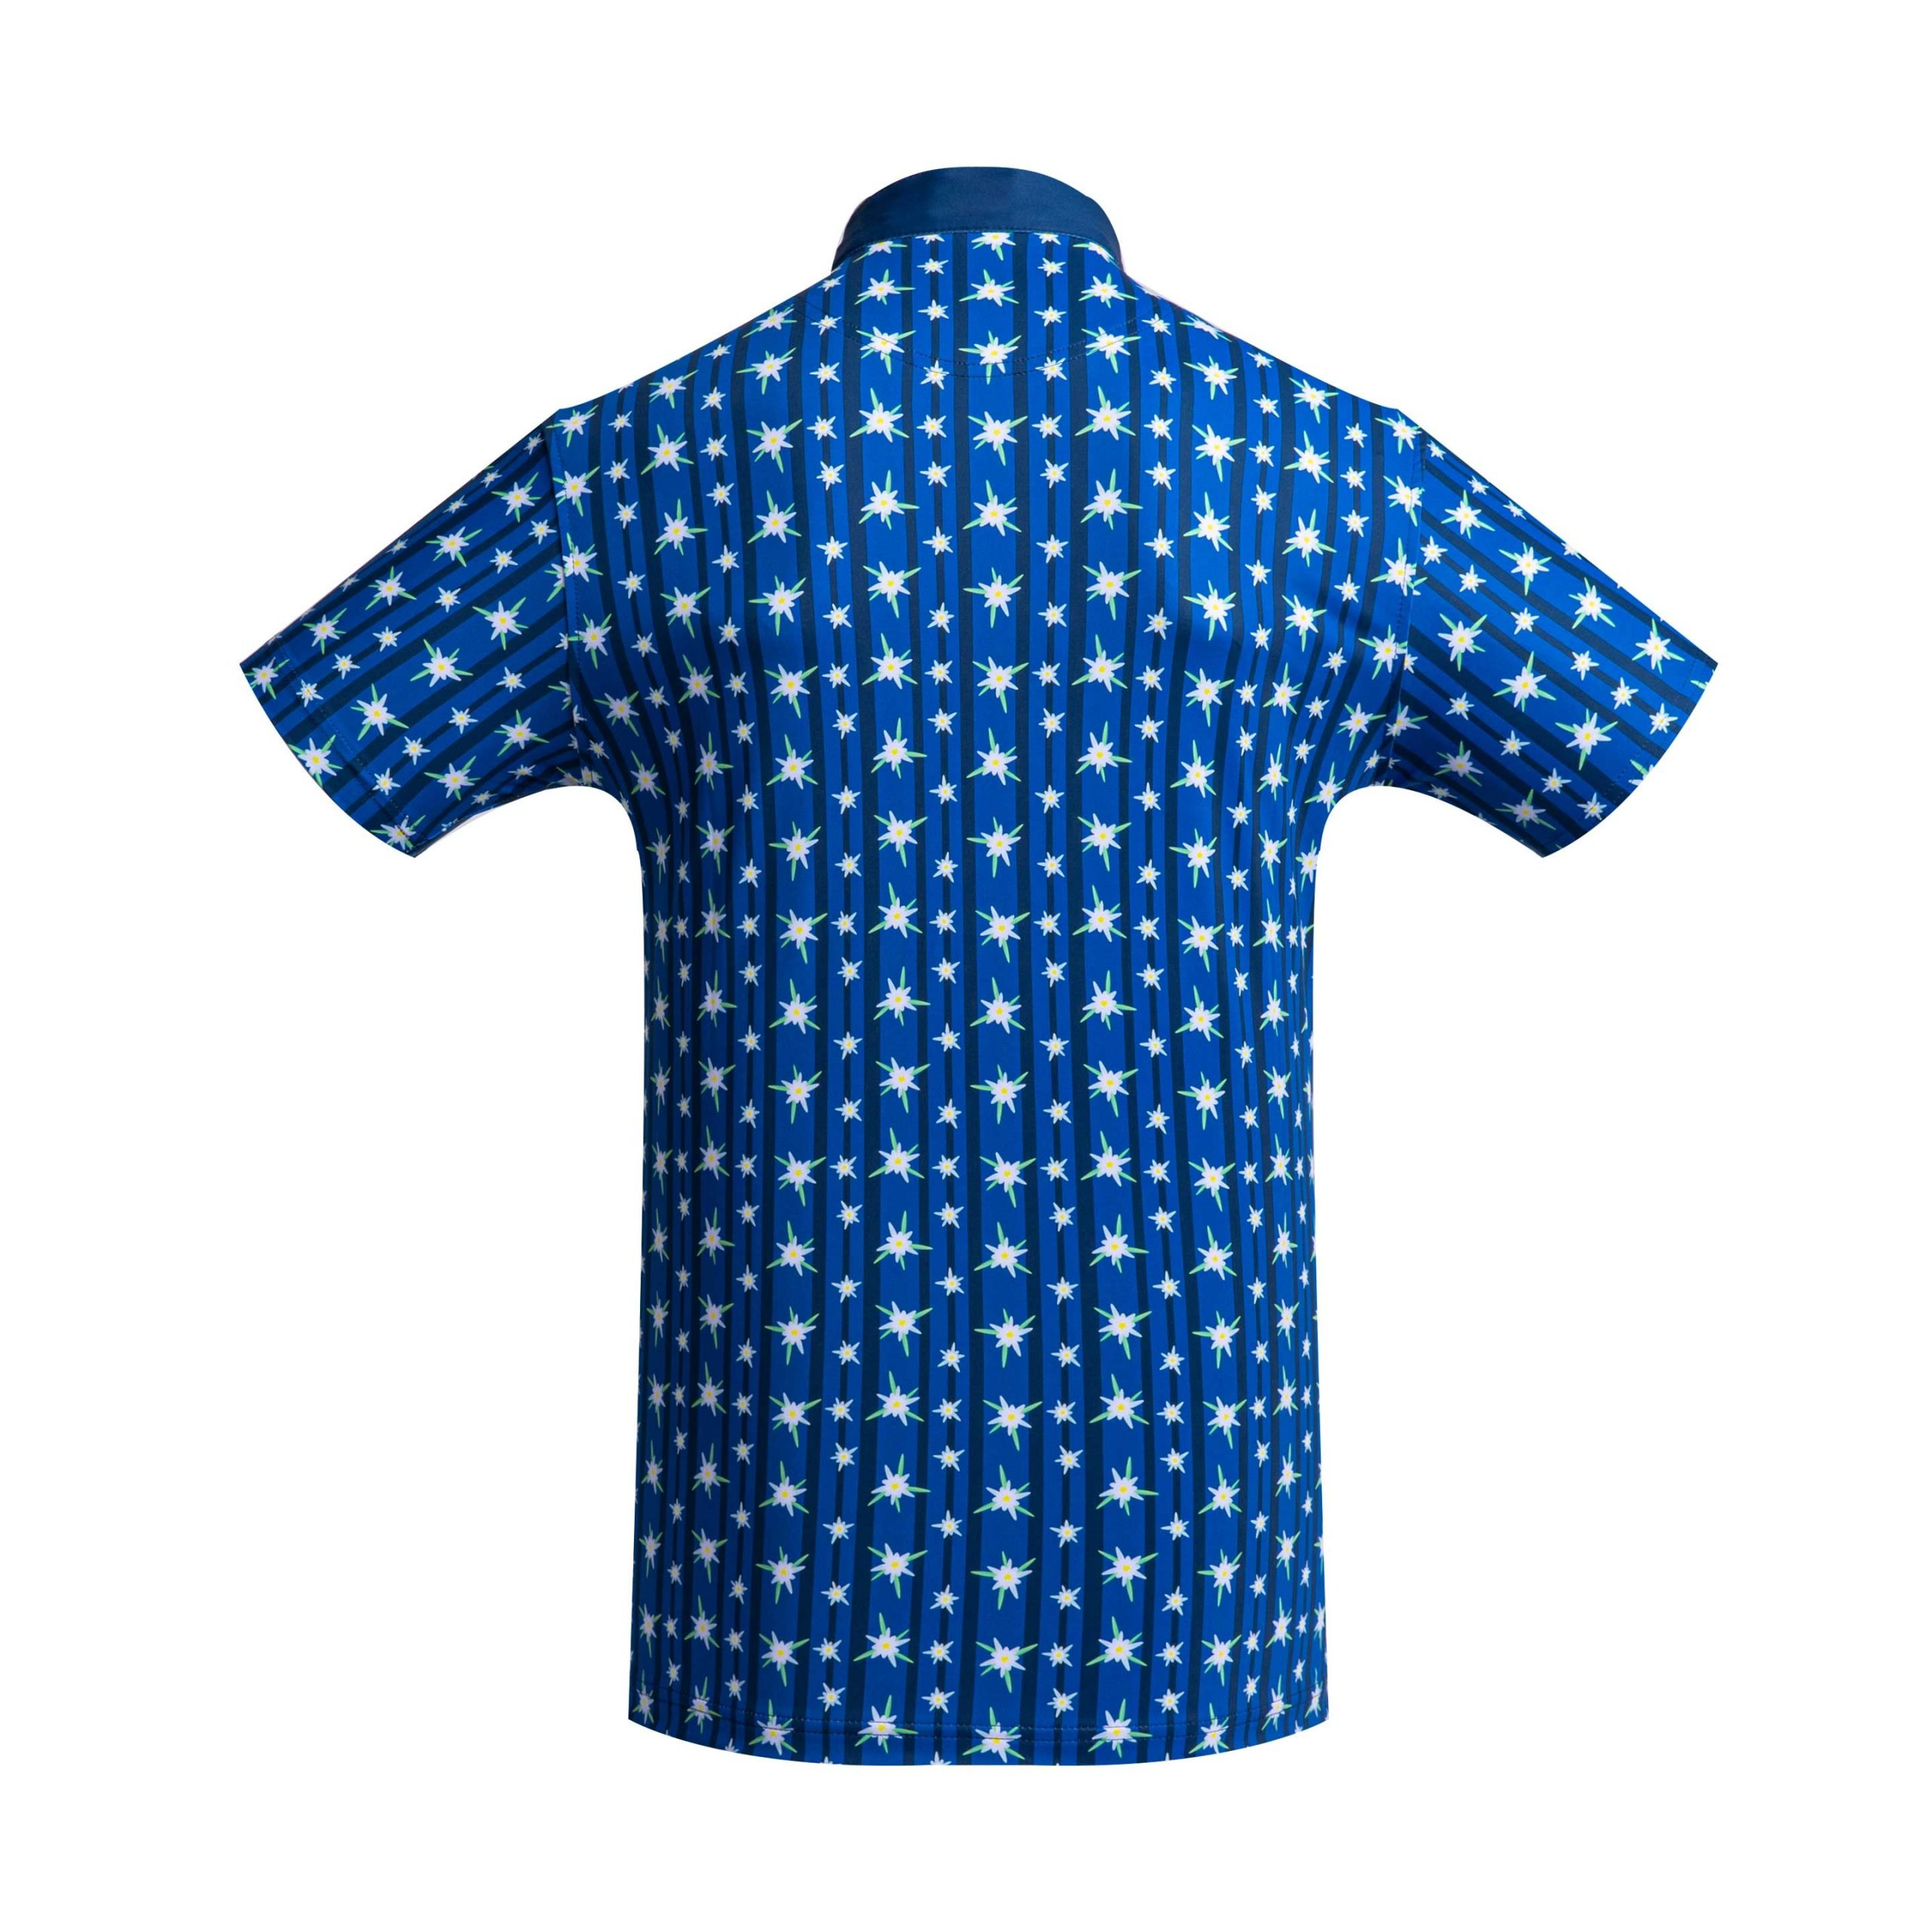 Golf shirt - Blue Edelweiss